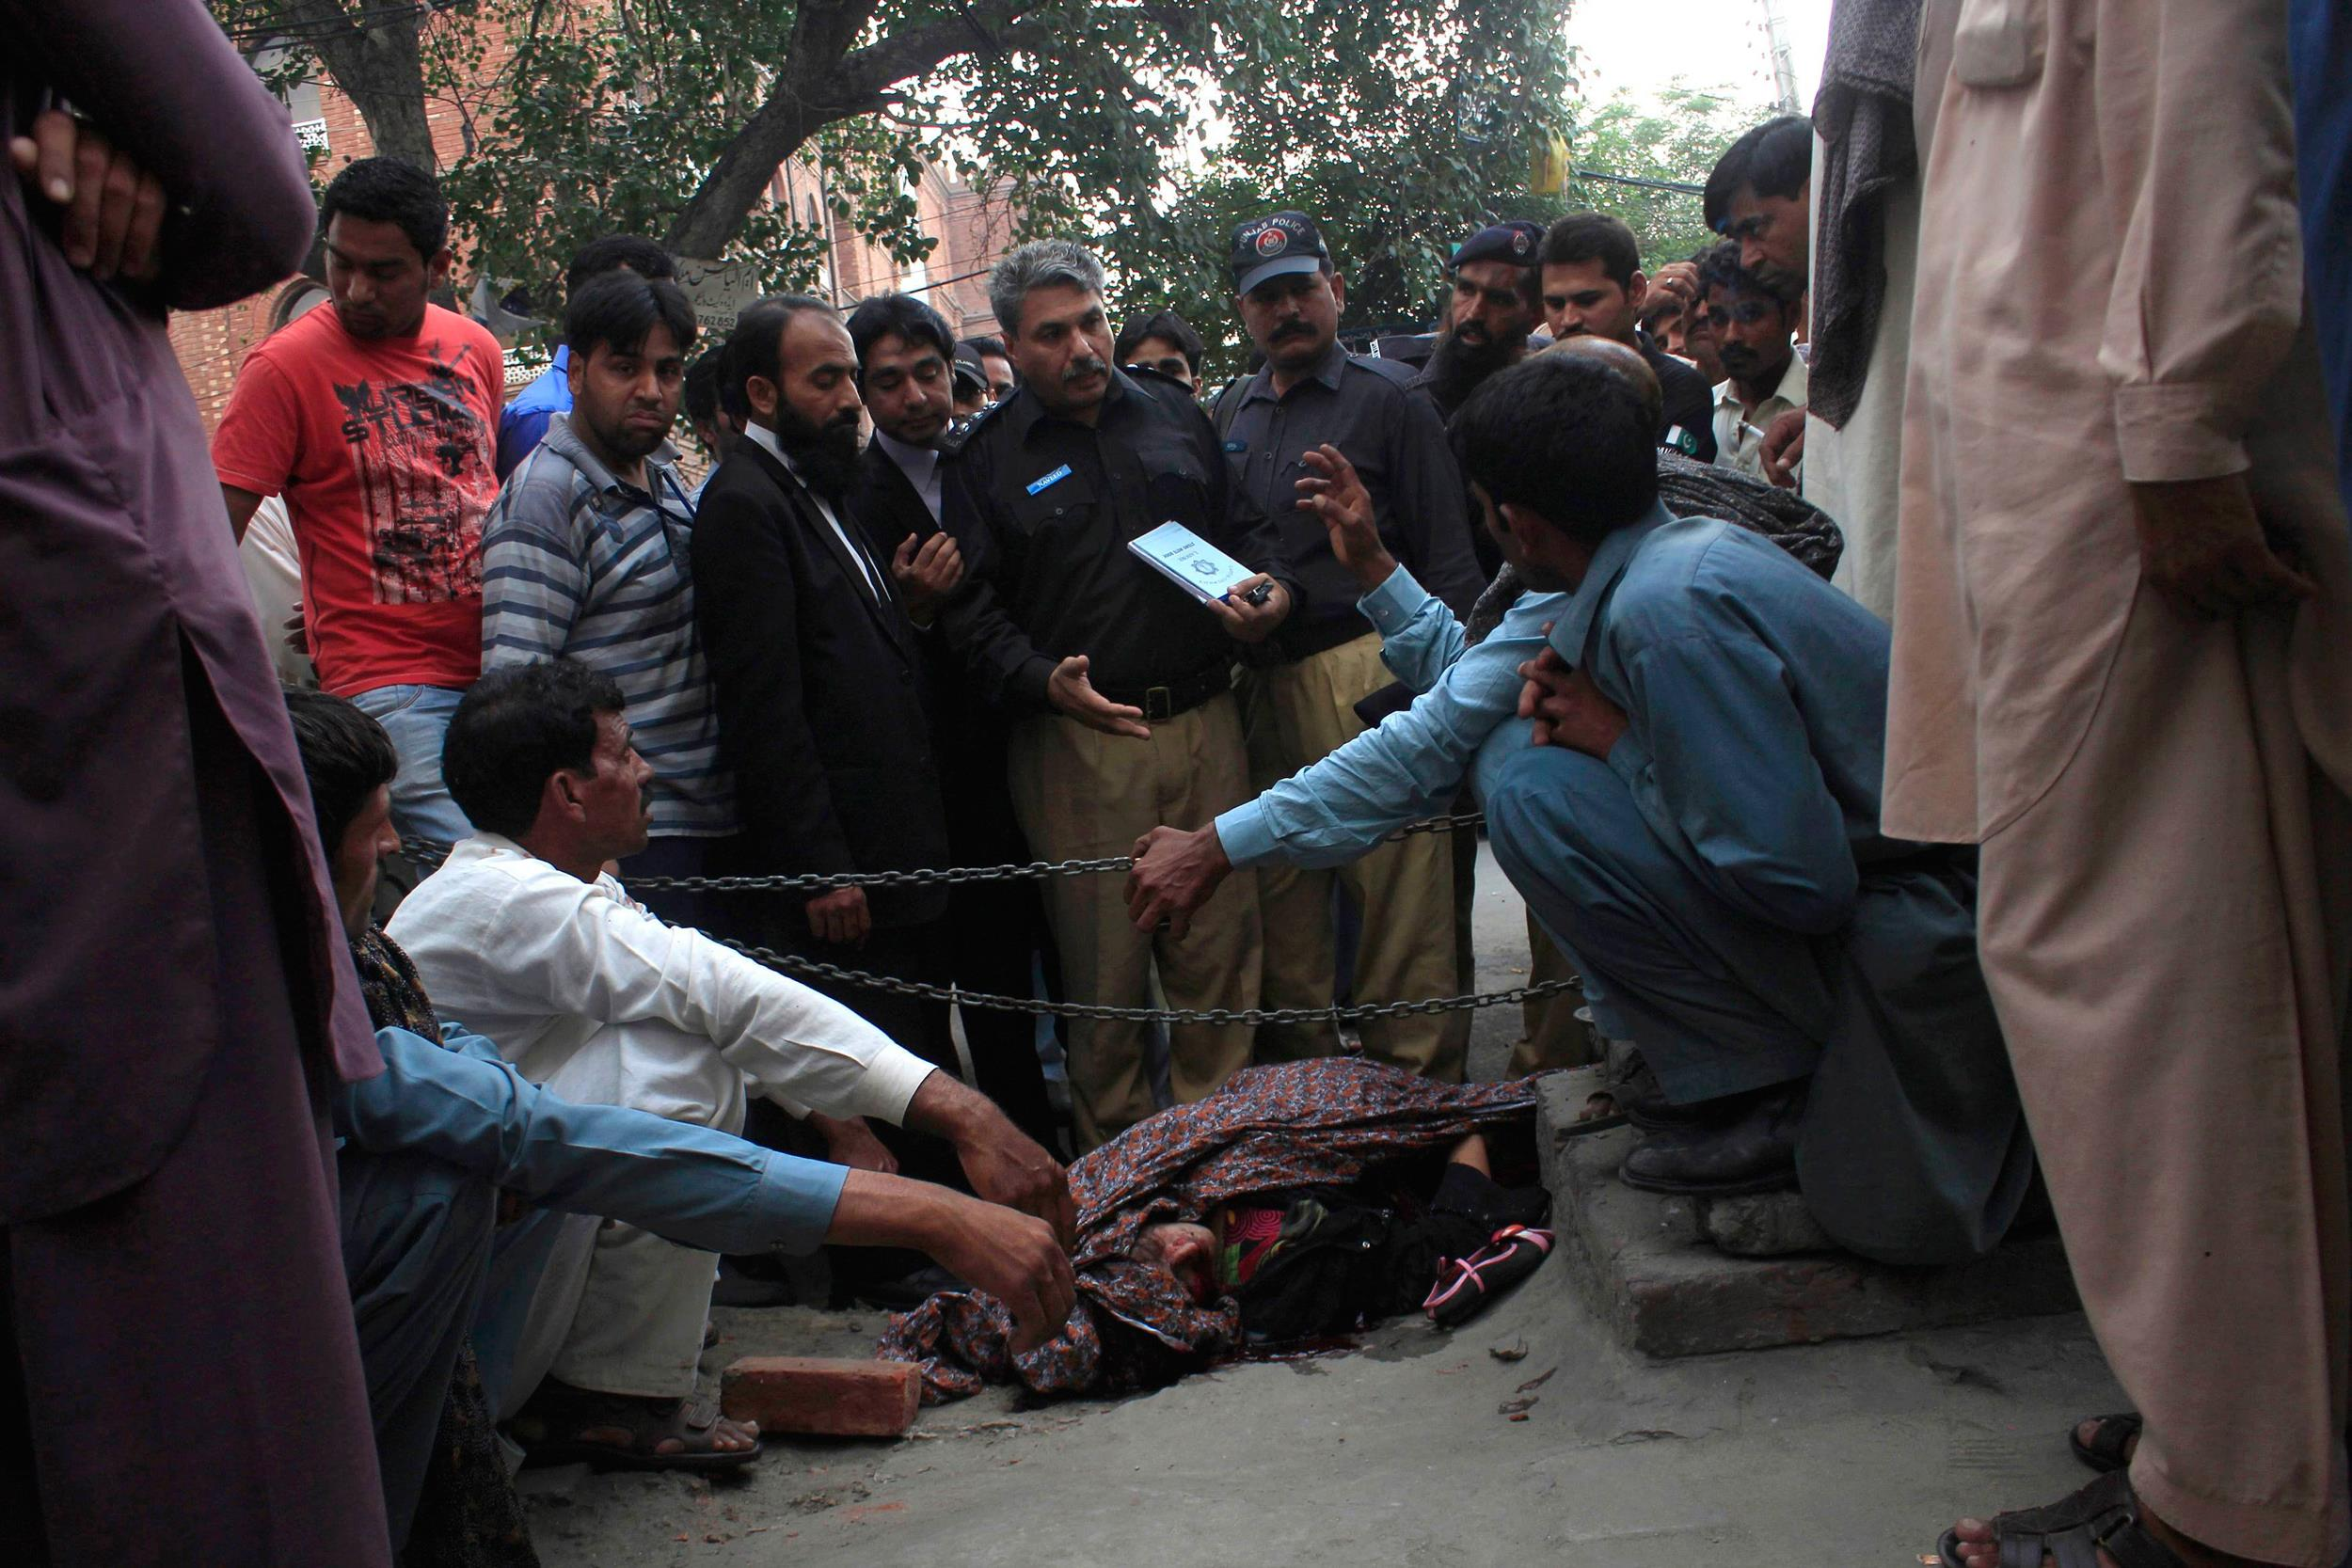 Farzana Parveen was murdered with bricks by relatives outside court in Lahore, Pakistan